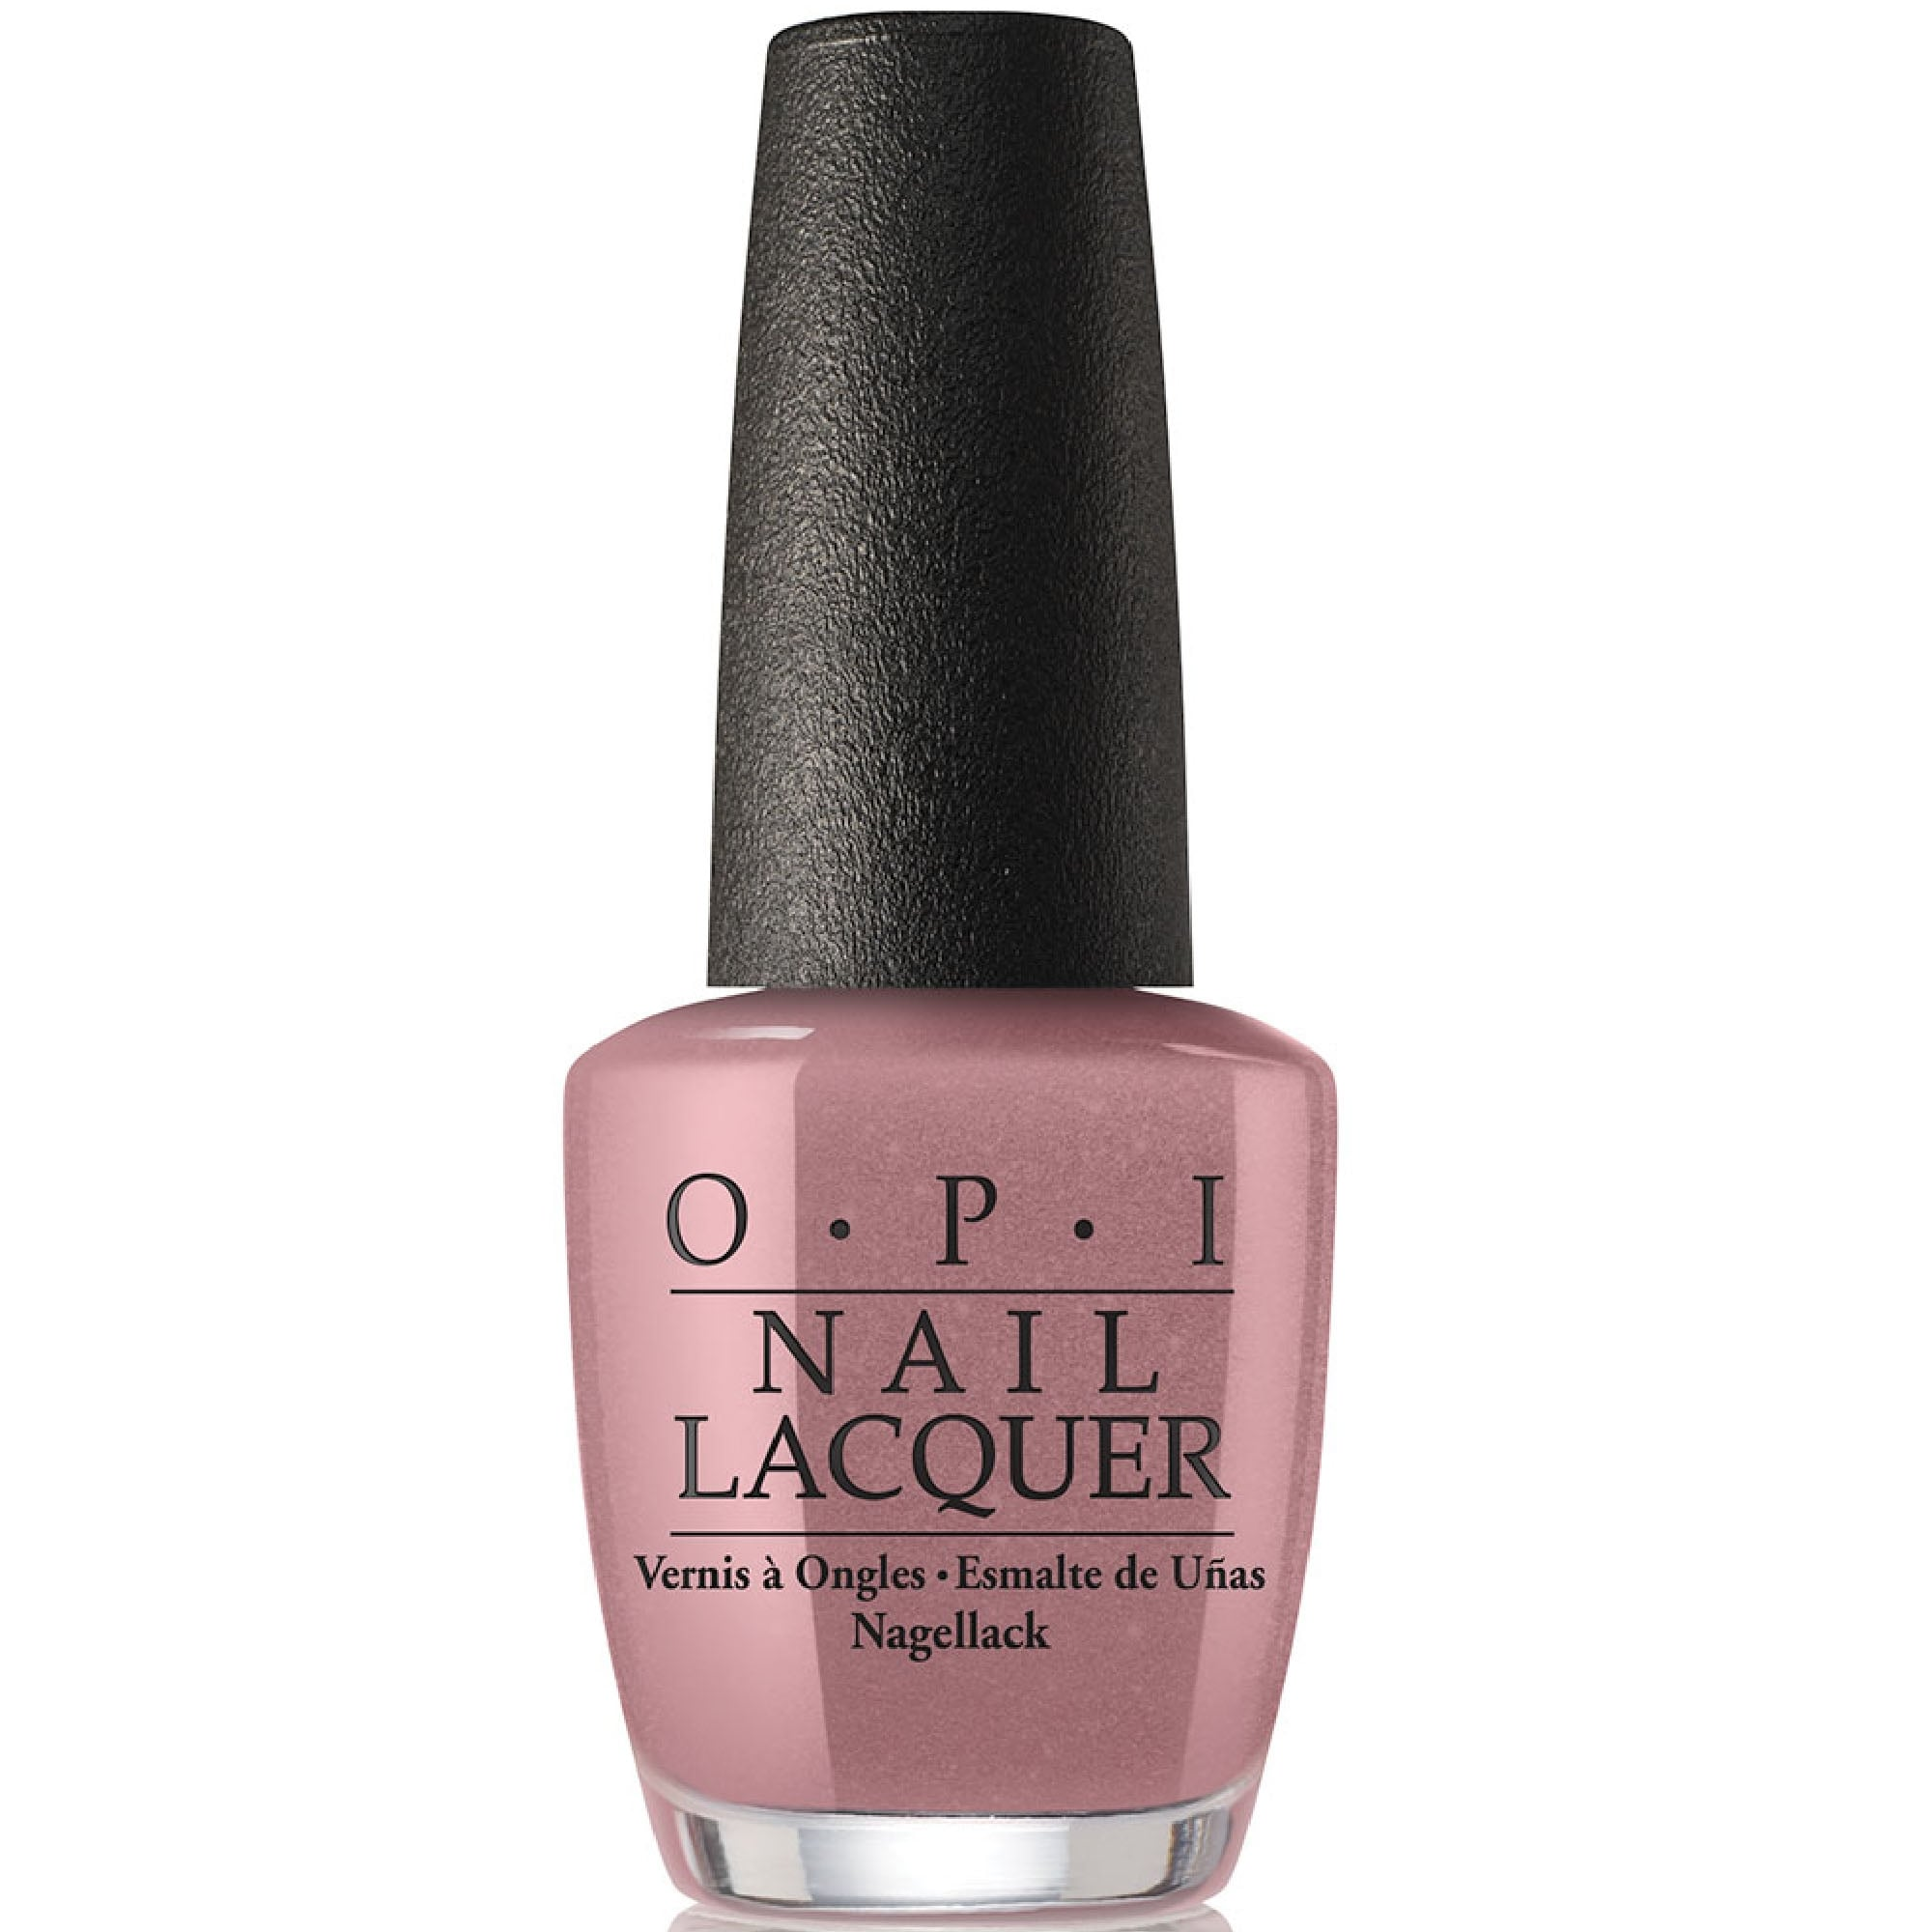 Reykjavik Has All the Hot Spots-OPI Nail Lacquer-UK-Wholesaler-Supplier-queenofnailscouk